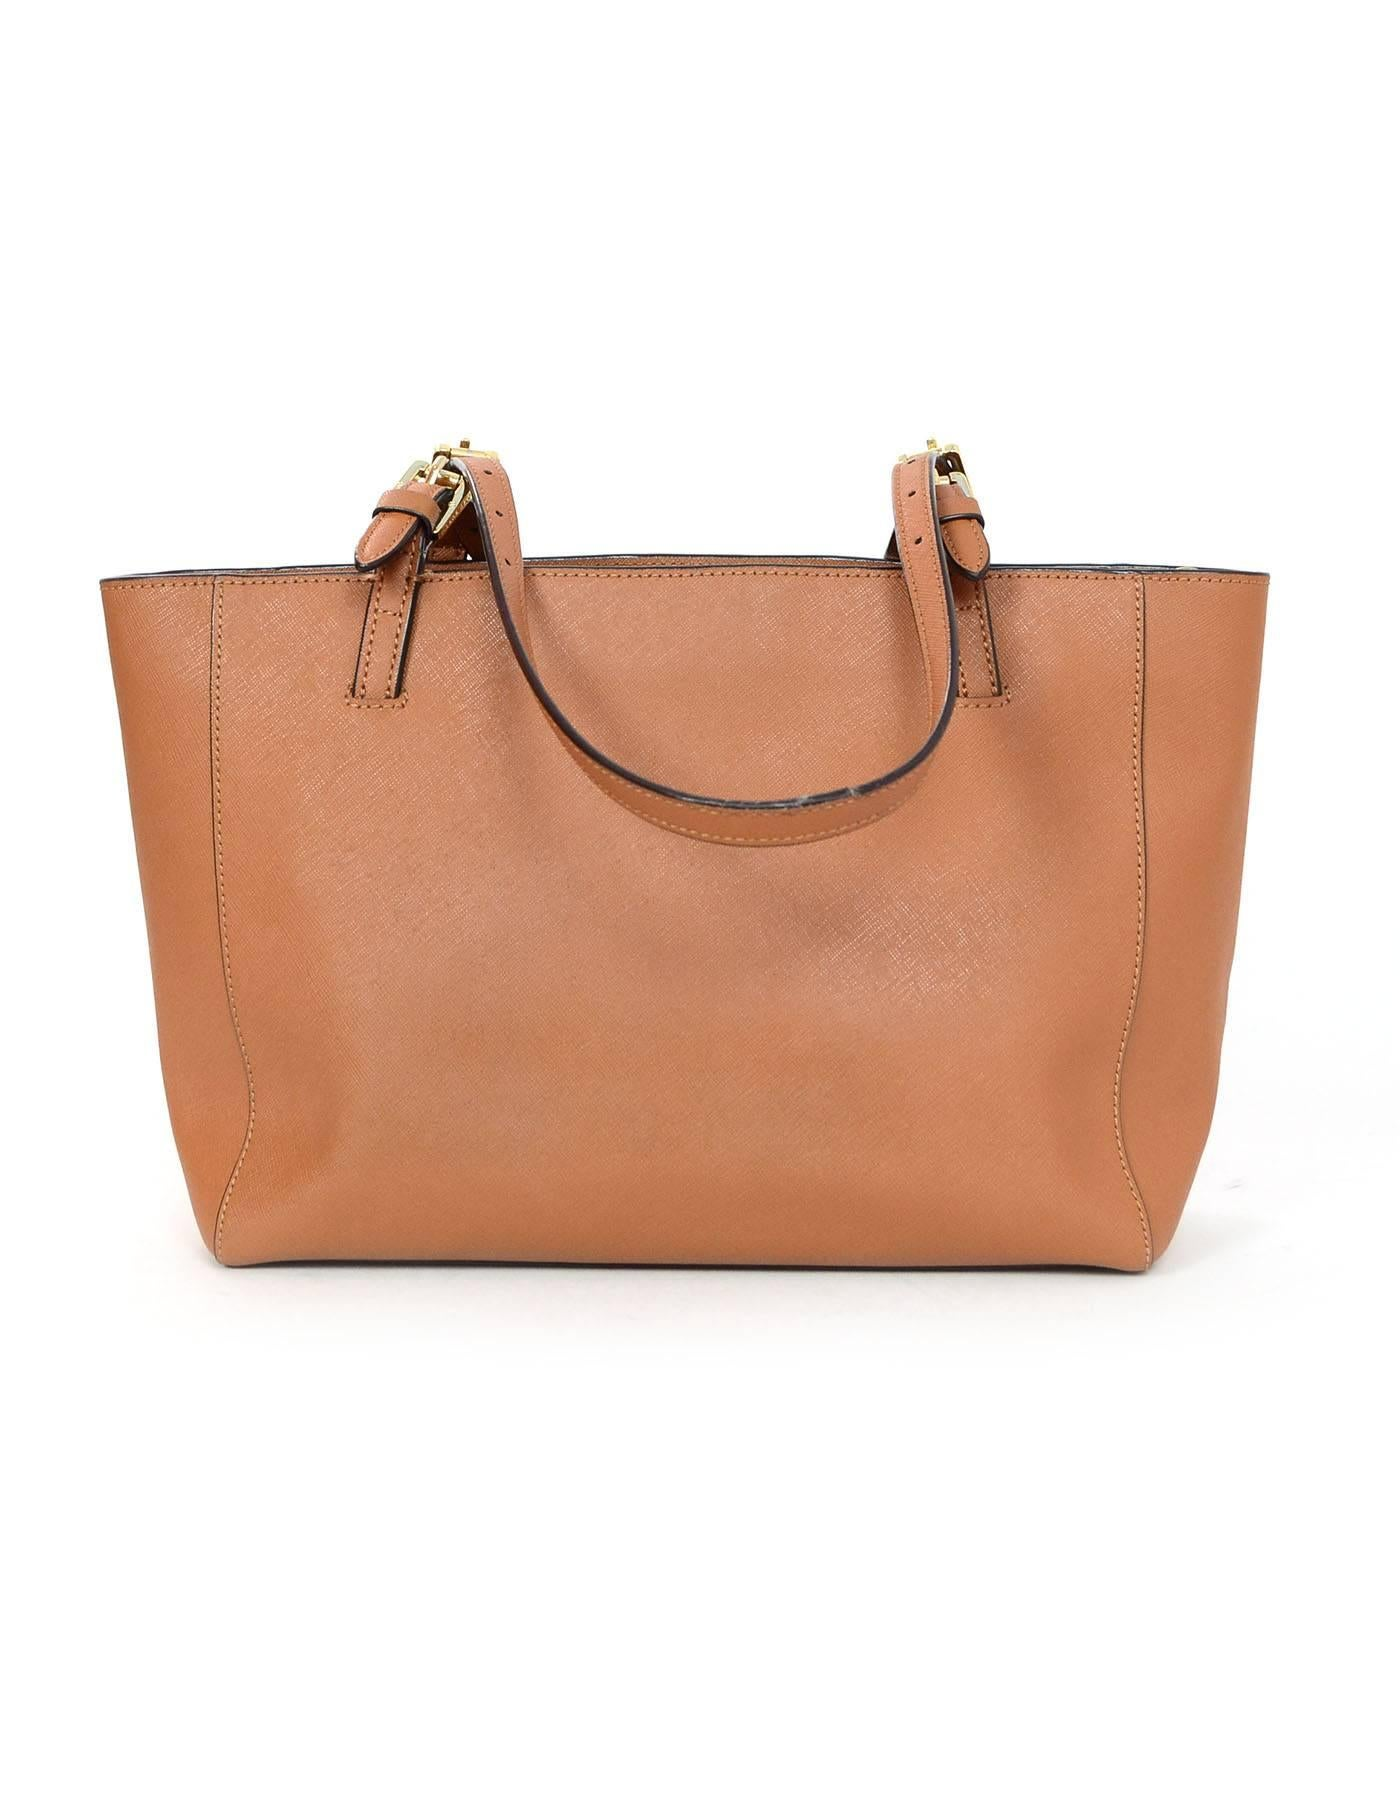 094608d30c4 coupon for orange tory burch tan saffiano small york tote bag for sale  27d17 ef1c4